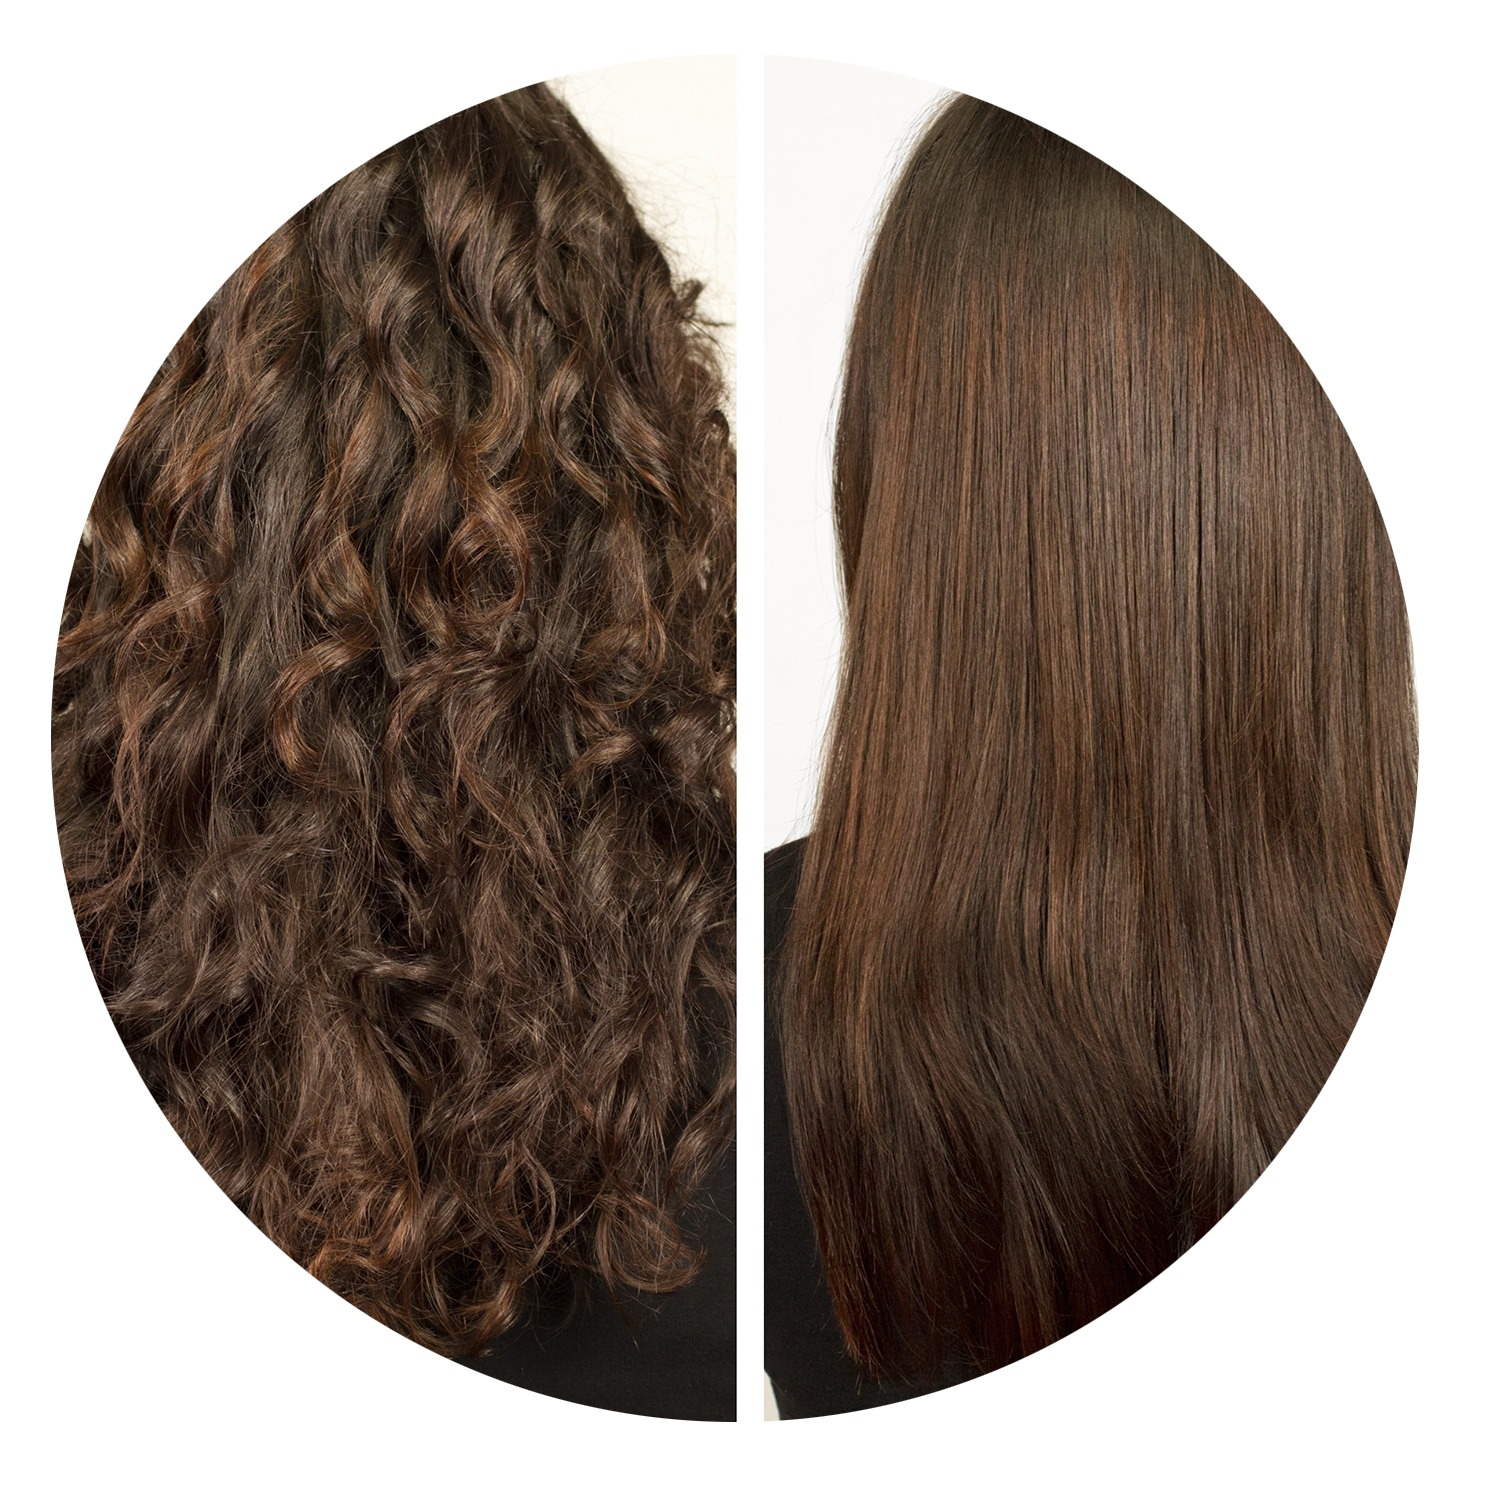 Japanese straight perm price - Hair Straight And Perm Straight Hair Perm Cost Charlotte Keratin Treatments